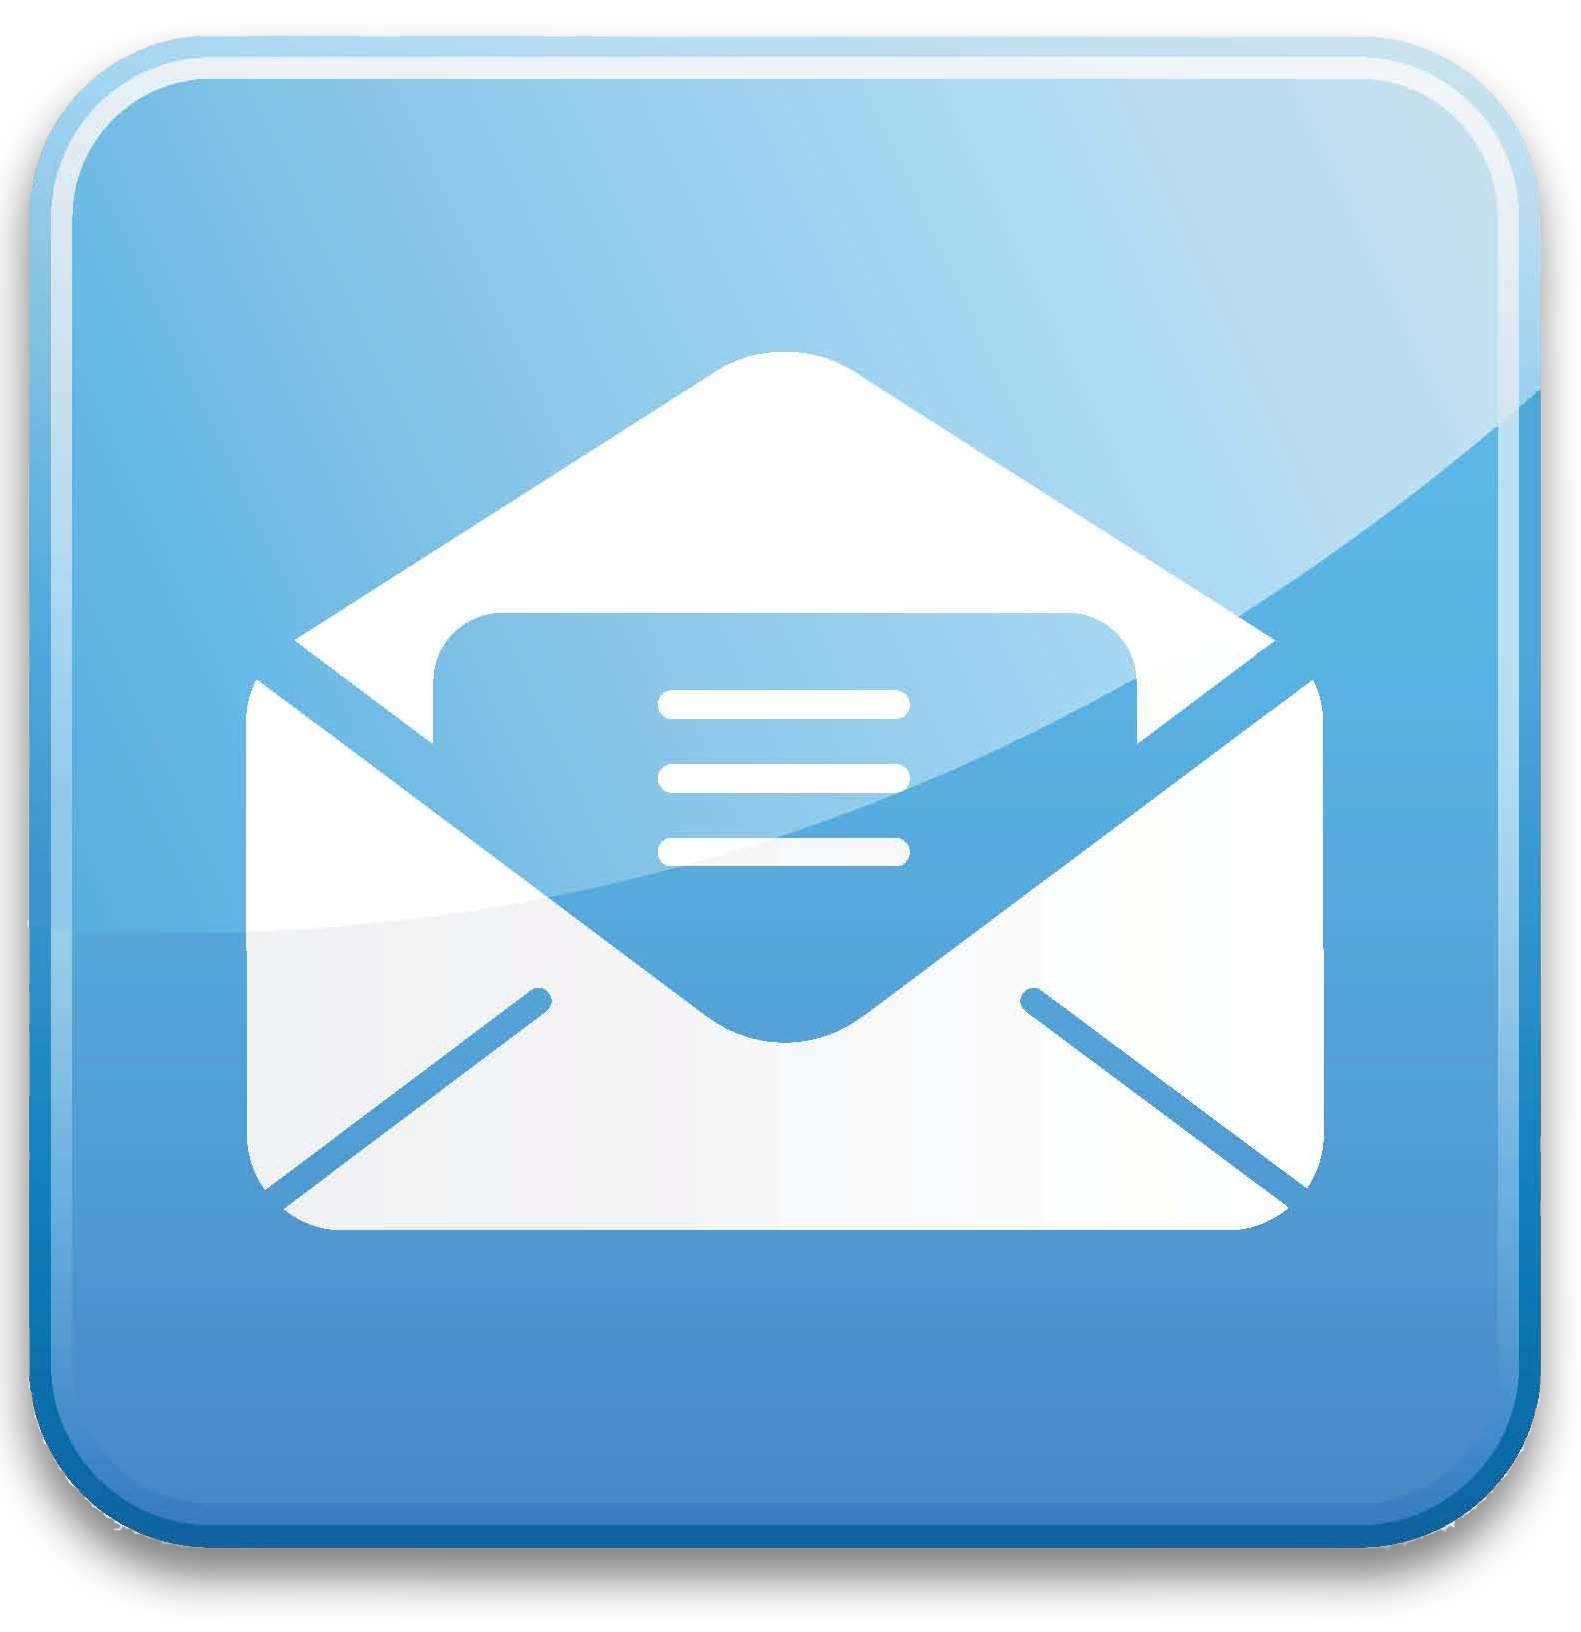 E-mail notification based on saved search criteria for Real Estate